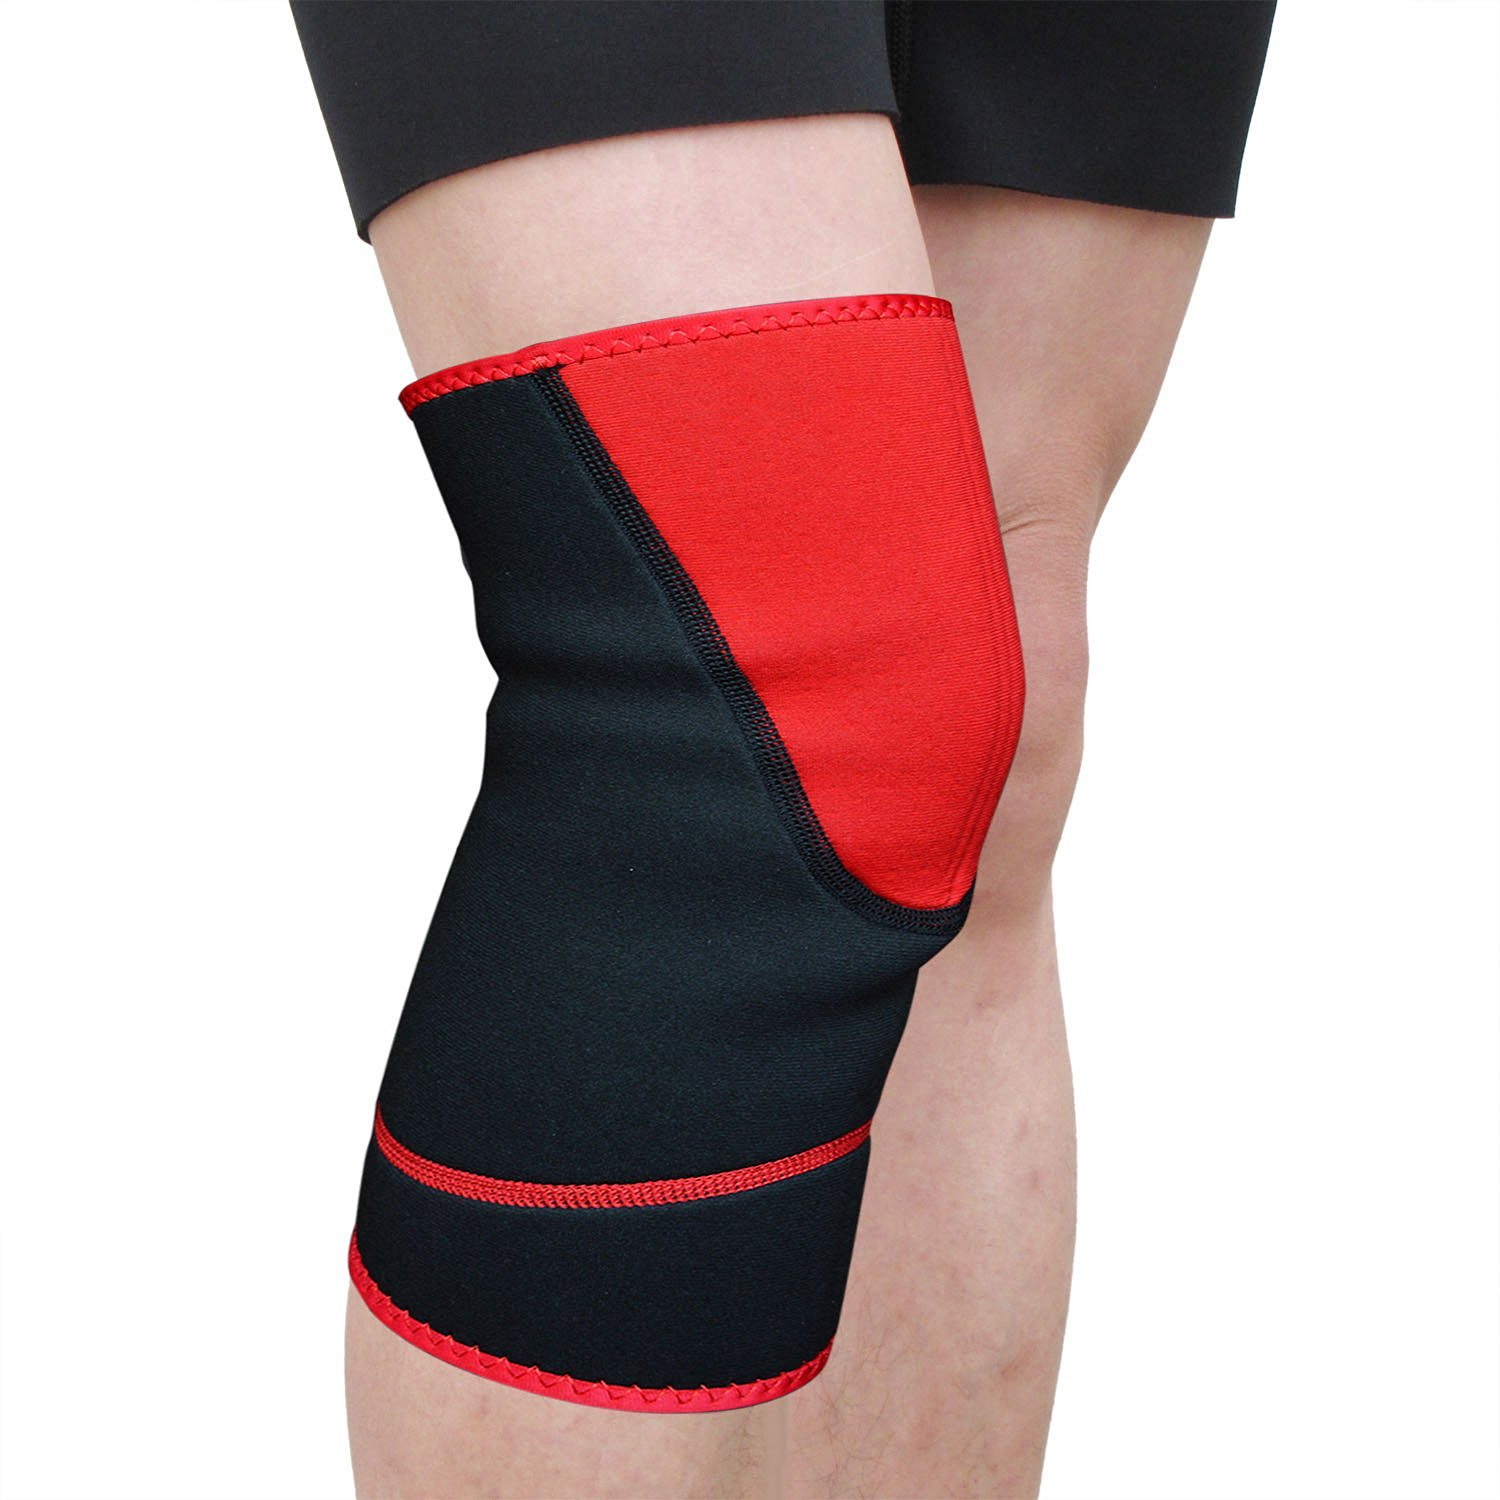 Beyoung(TM) Compression Heavy Duty Unisex Knee Sleeve Brace Support Knee Wrap for Weightlifting Volleyball Basketball CrossFit Running Squats Yoga Dancing - One Size Fits Most (1)